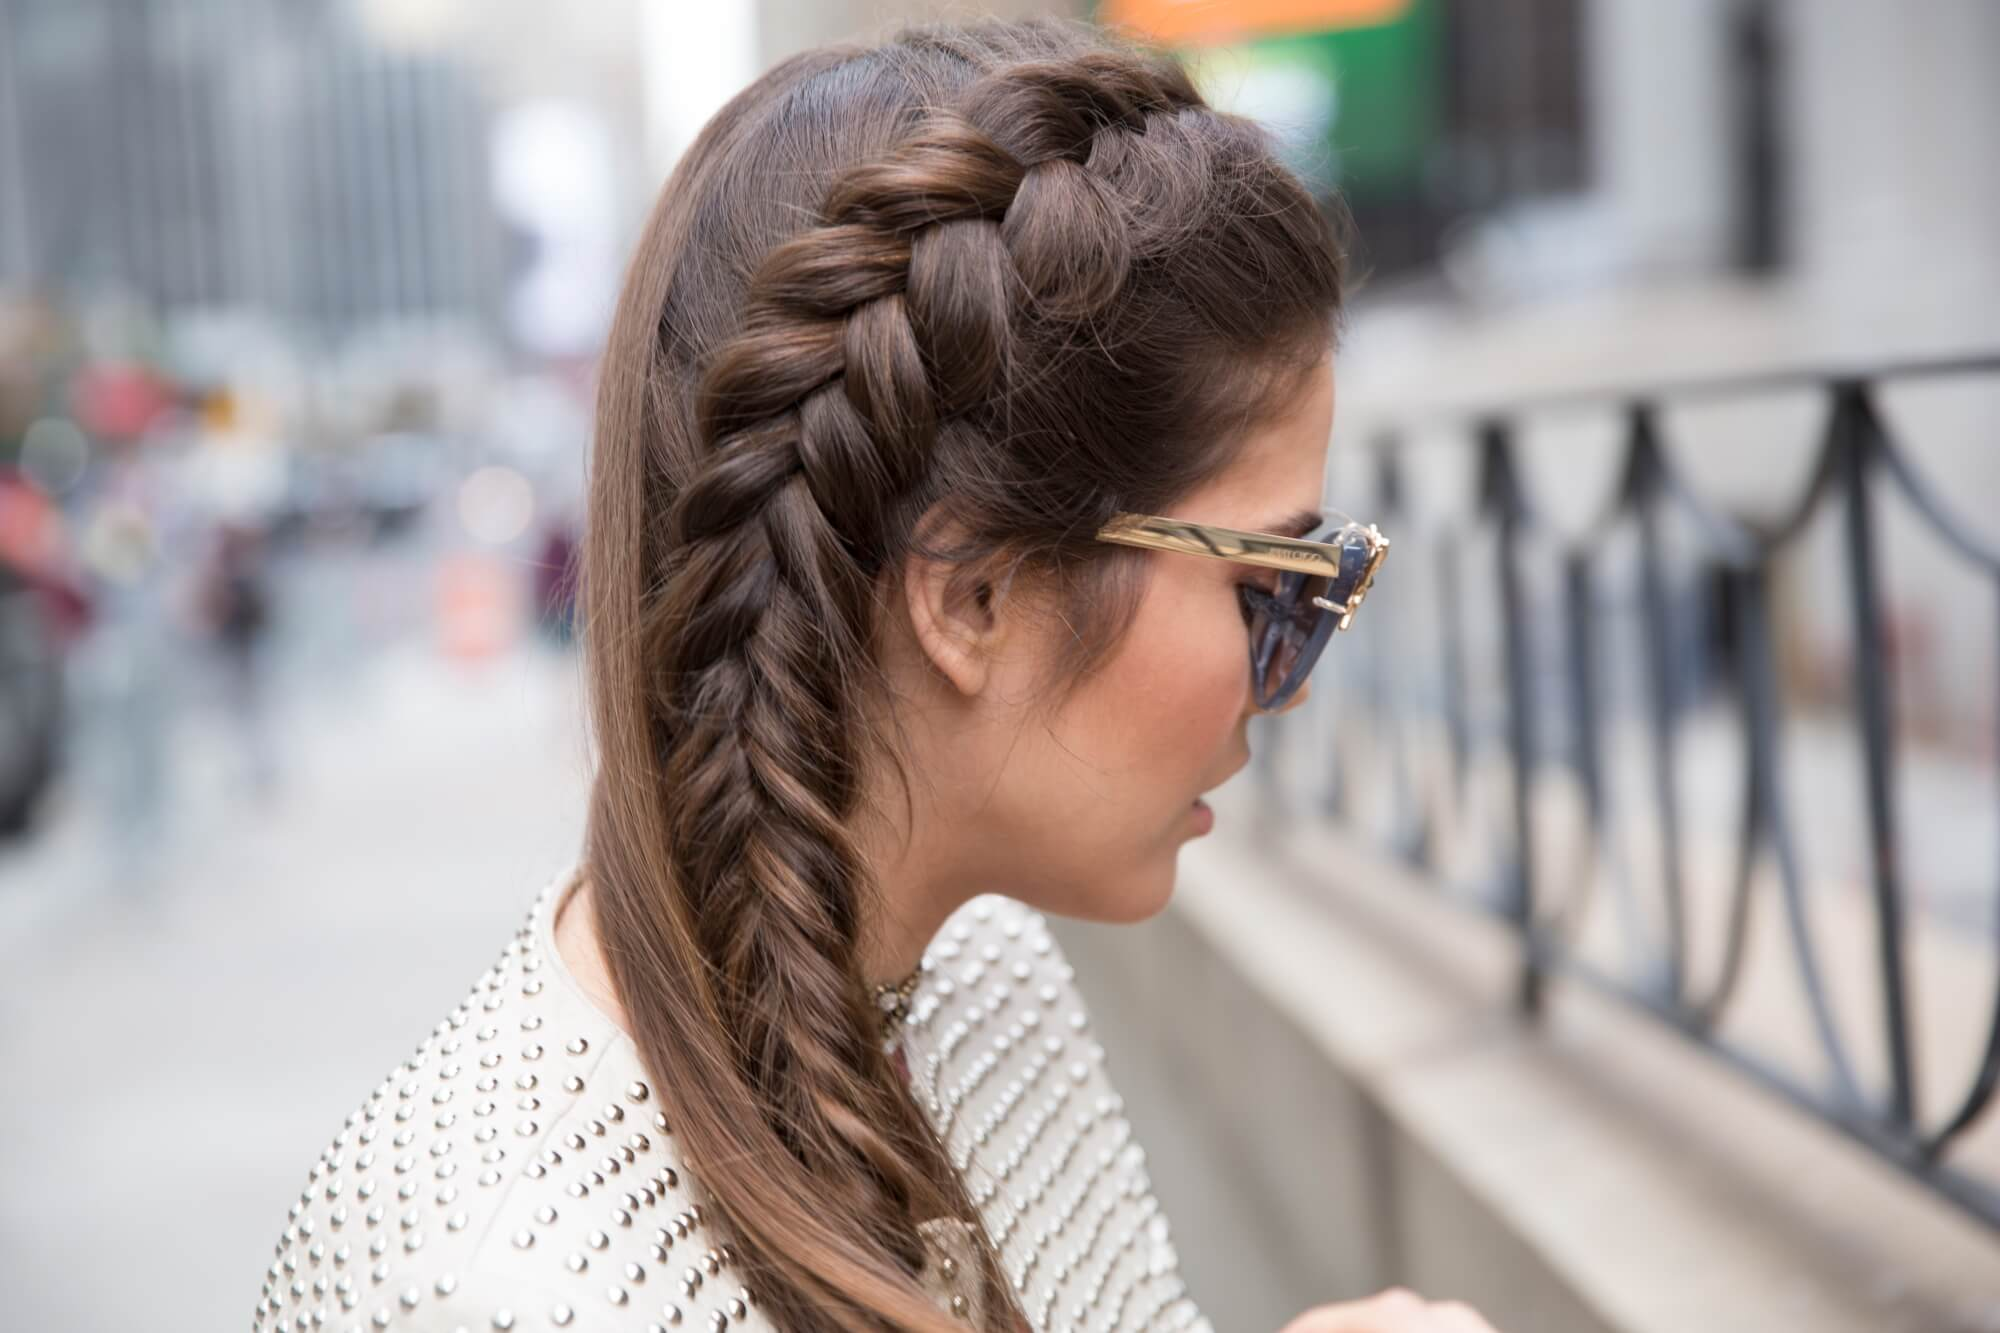 blogger Paola Alberdi from Blank Itinerary posing with mermaid braid hairstyle